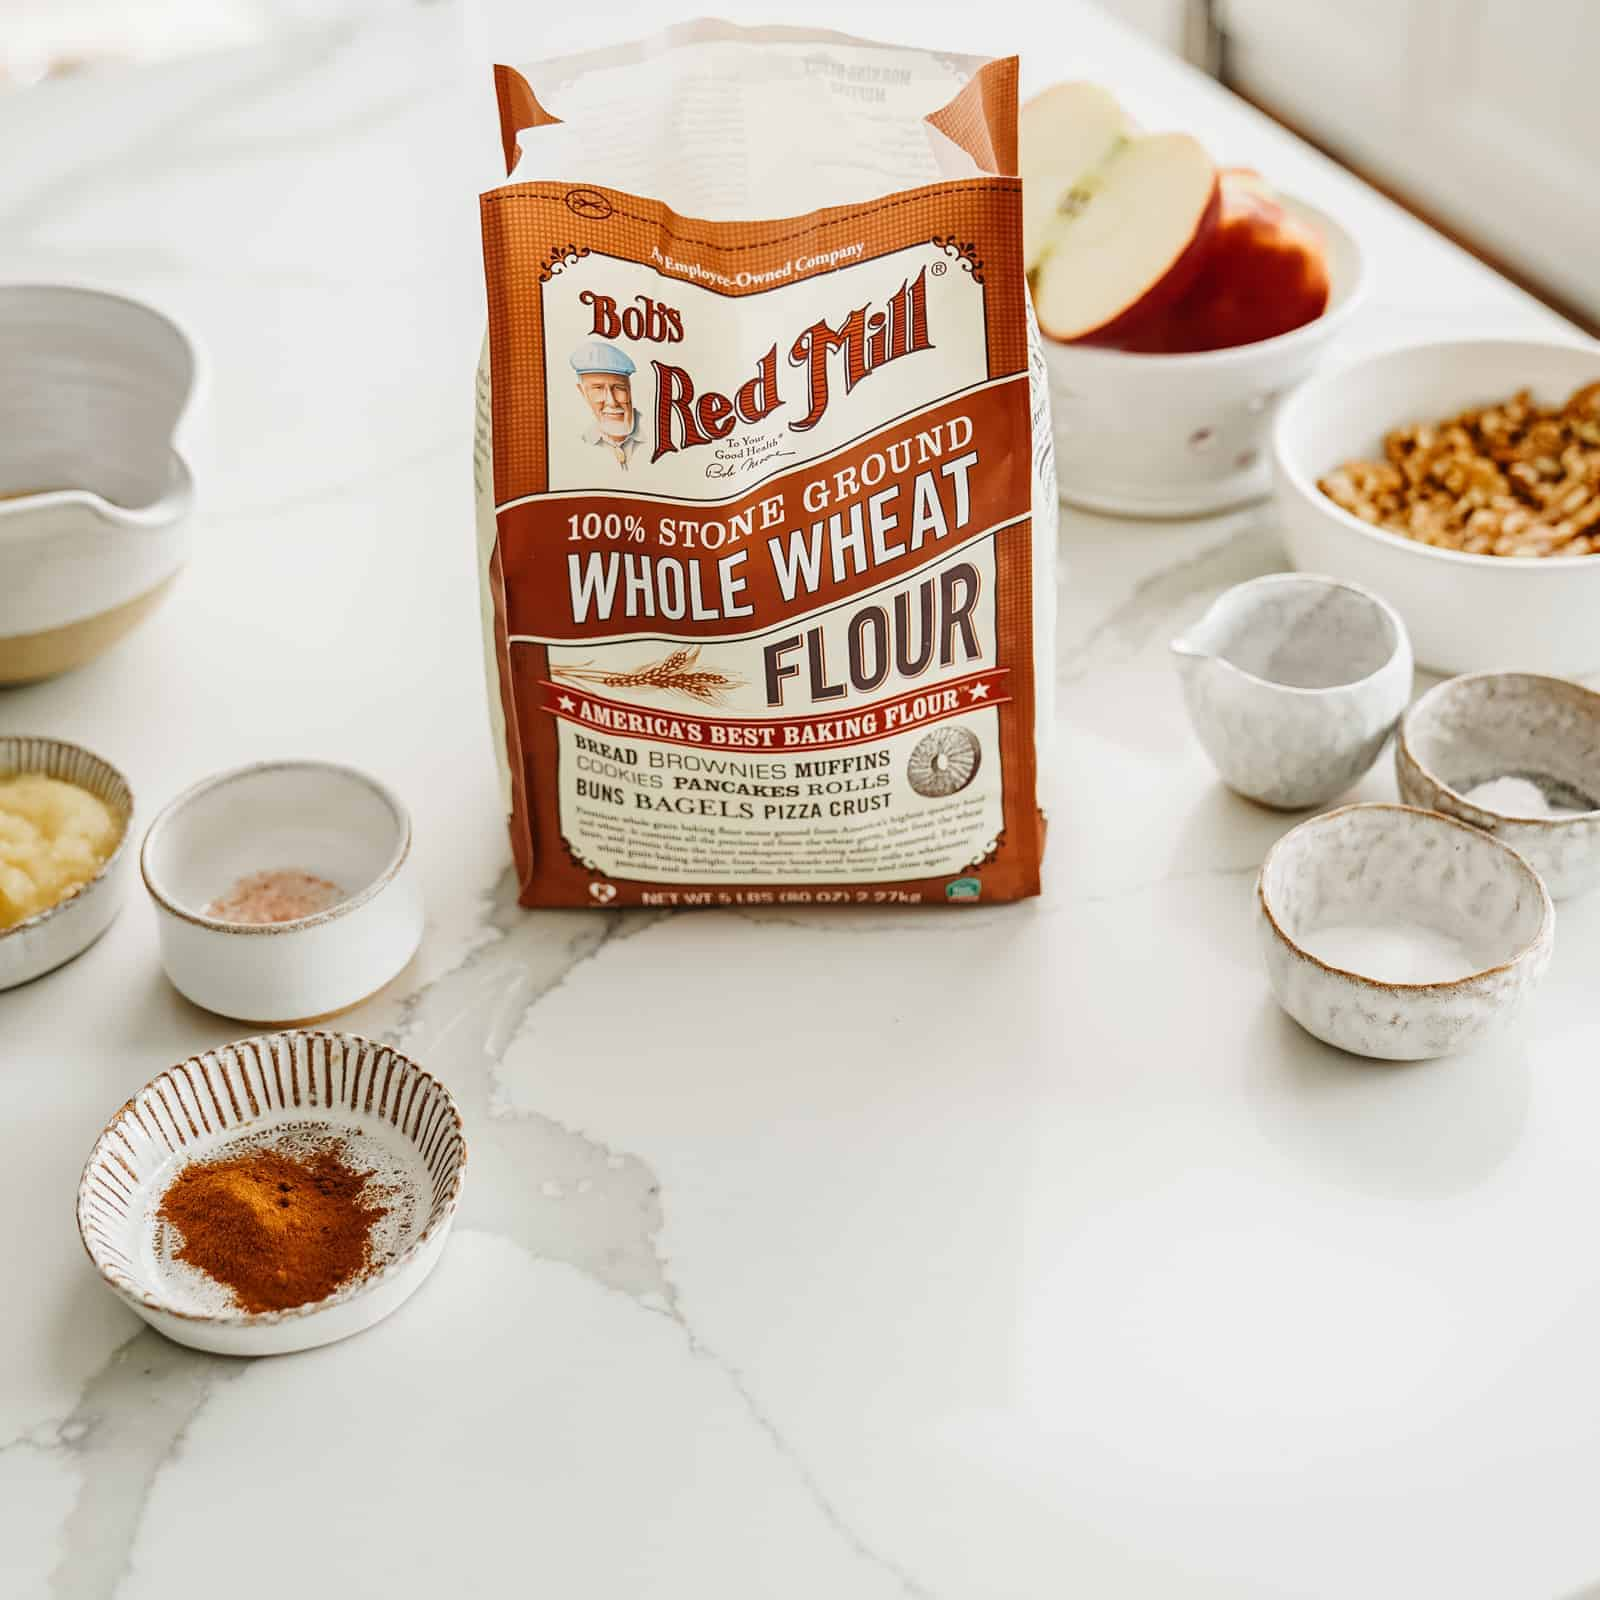 Bag of Bob's Red Mill Whole Wheat Flour sitting on countertop surrounded by other muffin ingredients.